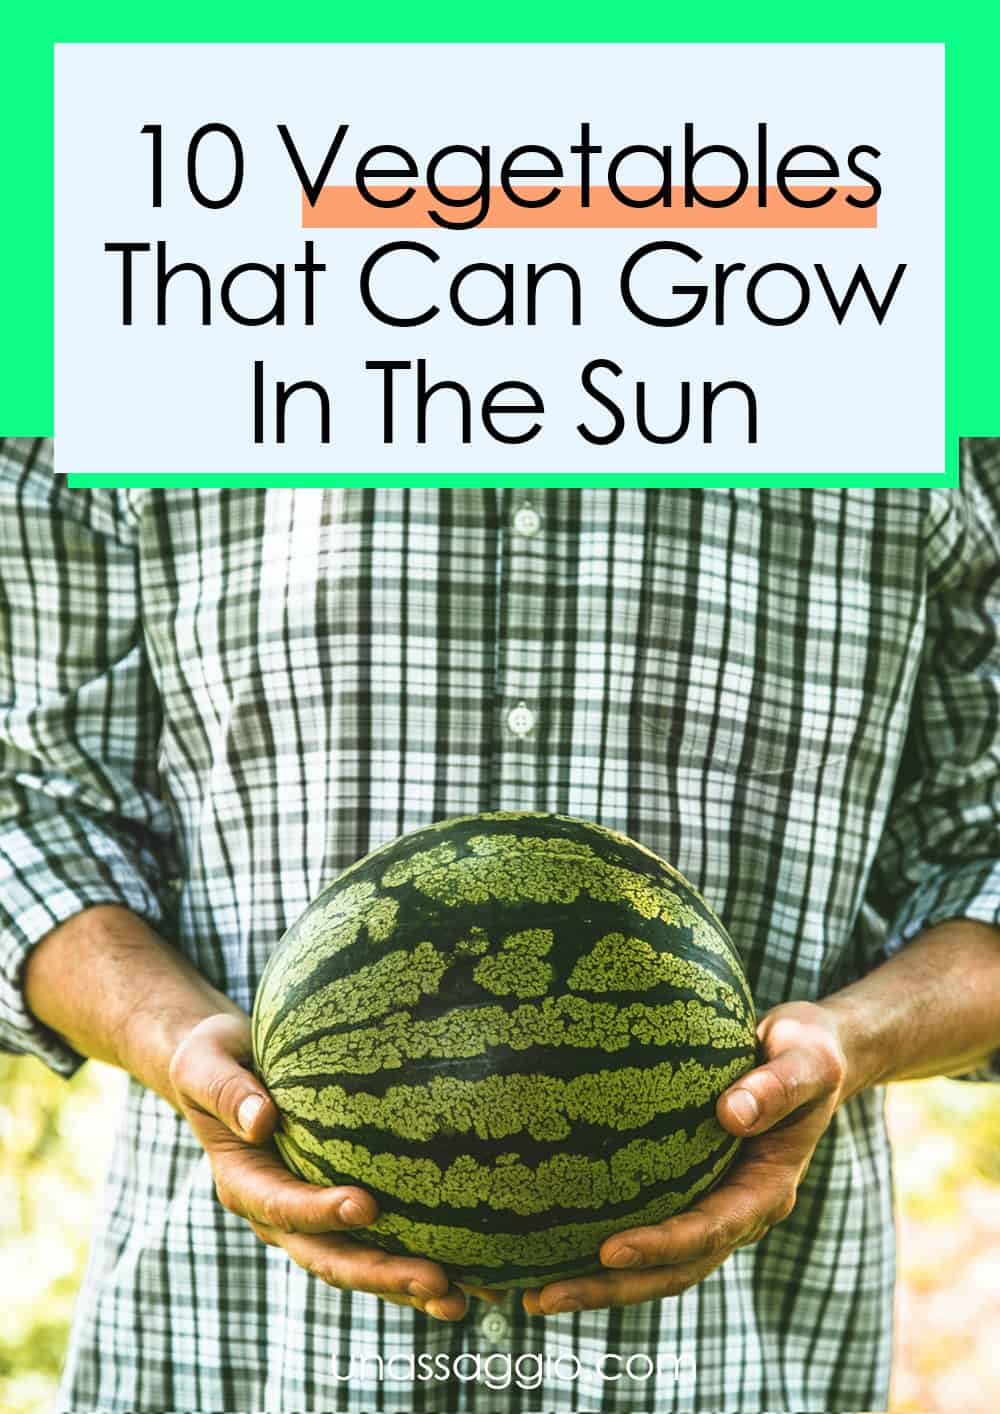 10 Vegetables That Can Grow In The Sun